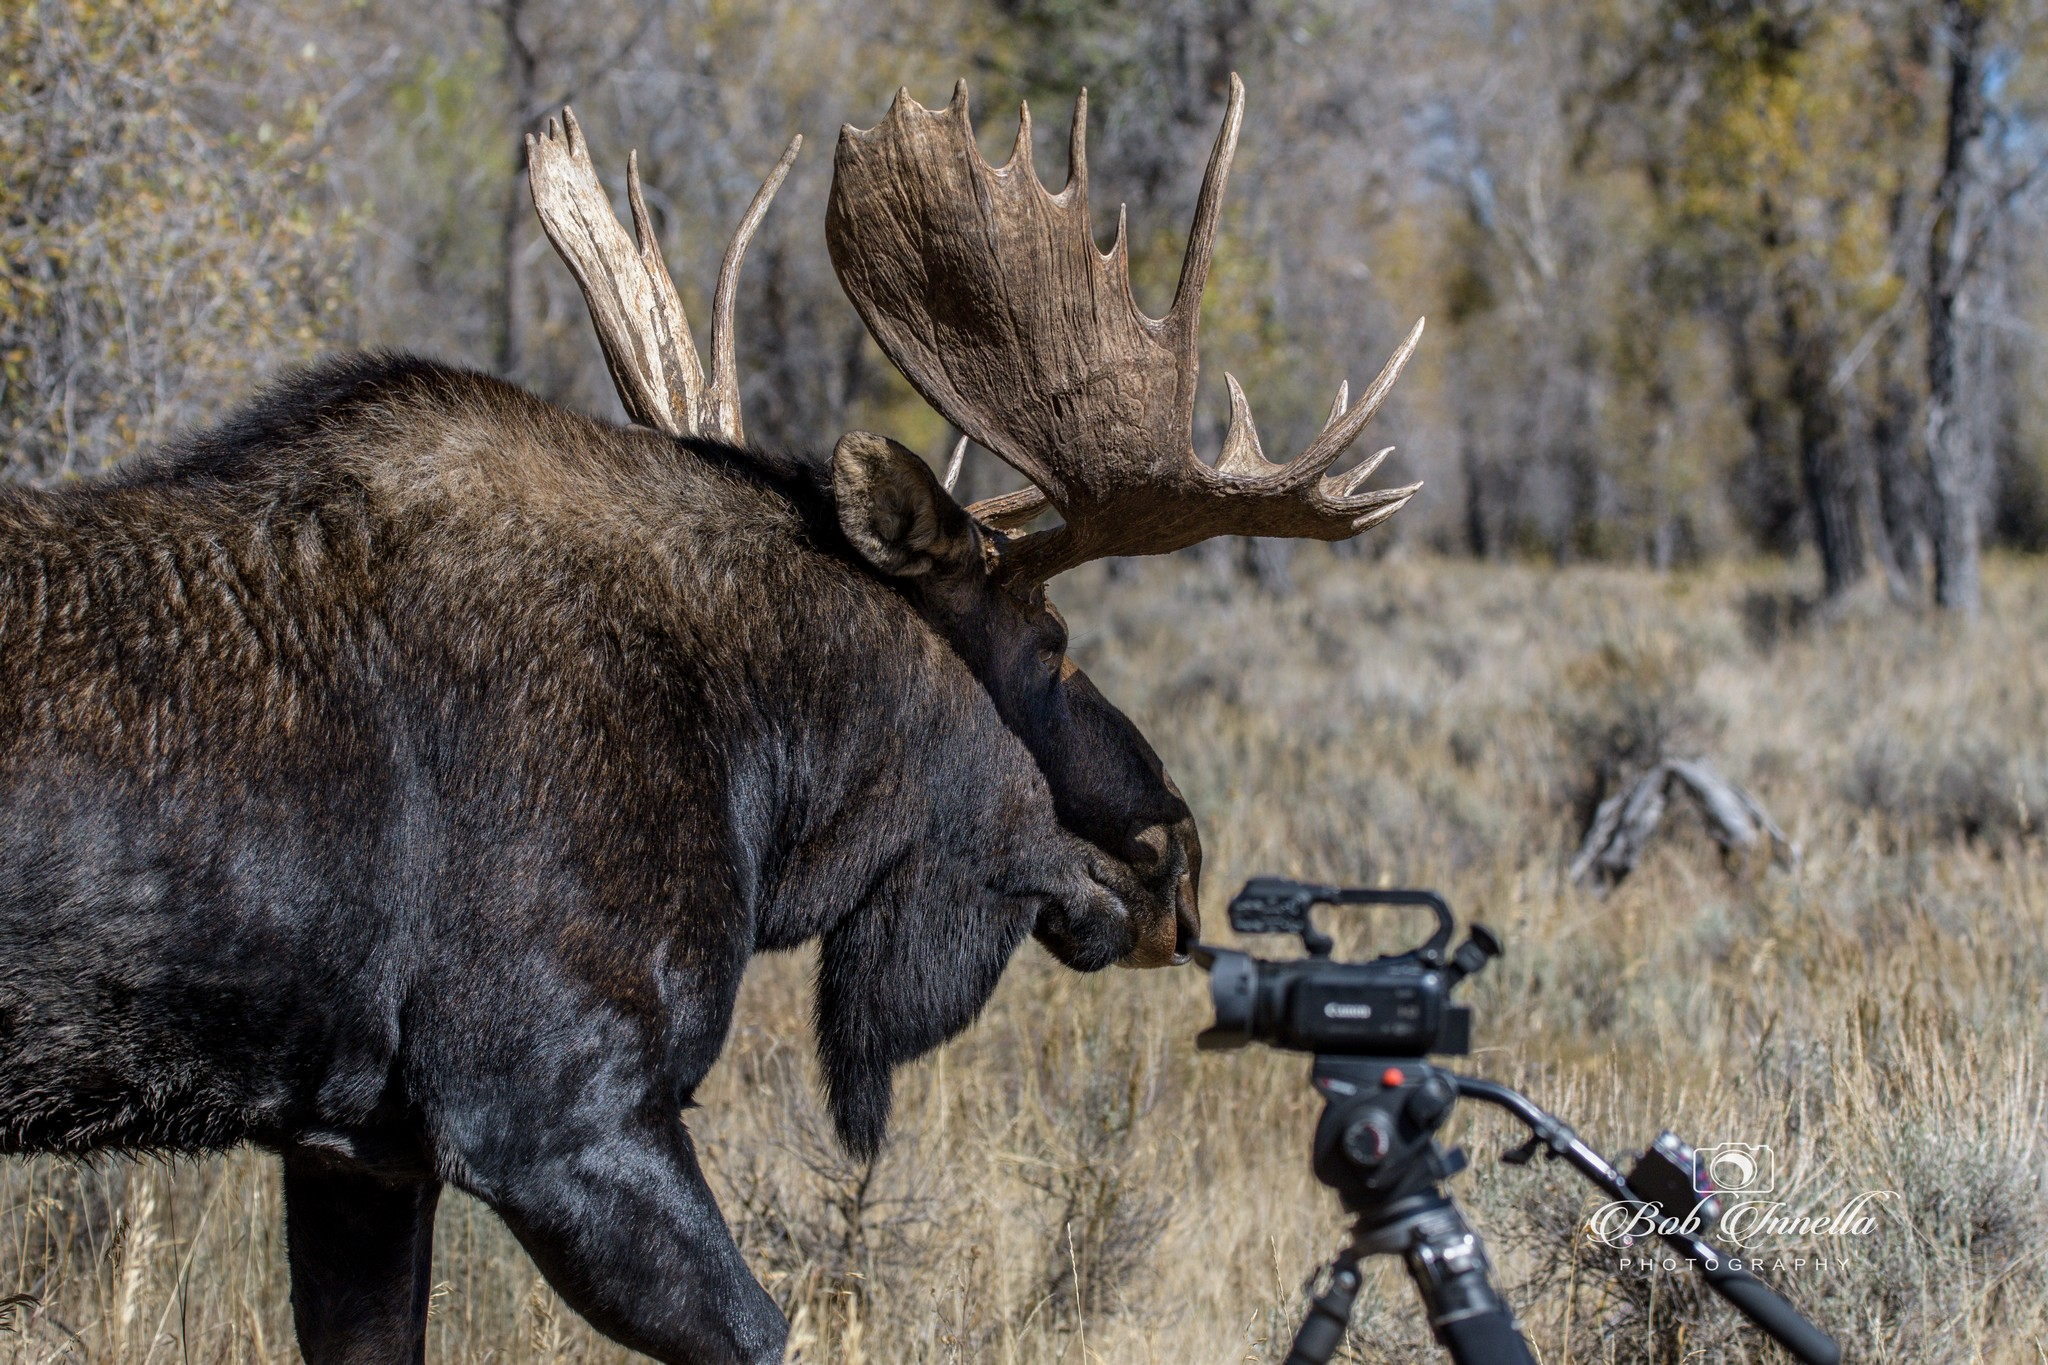 Moose_Camera - I had to retreat back as this Bull Moose wanted My Space, Wyoming 2018 by Buckmaster